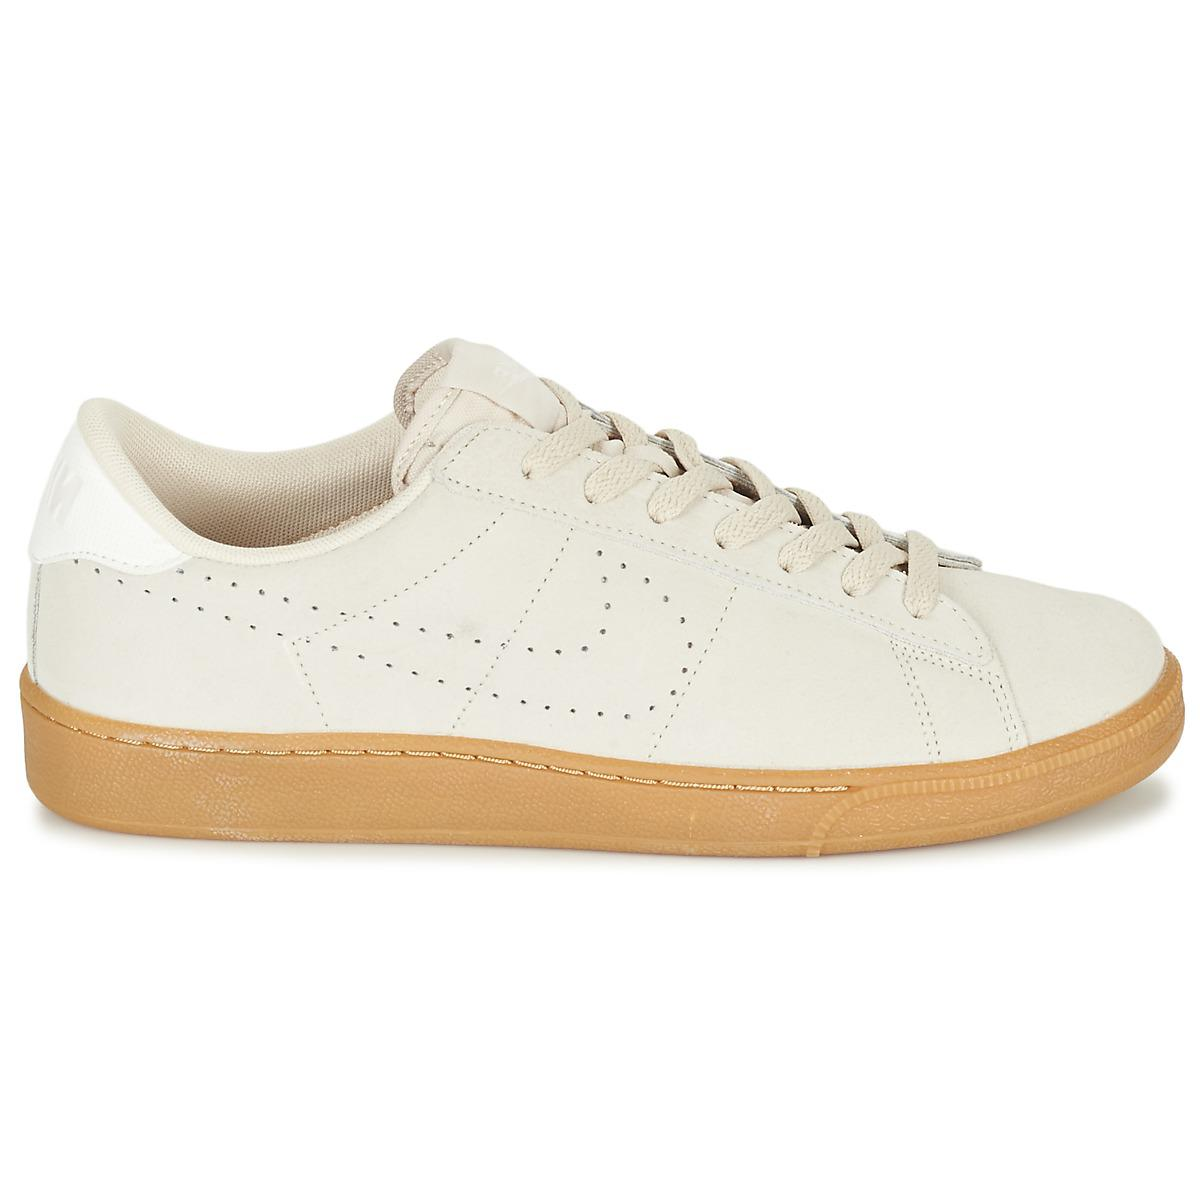 Nike Tennis Classic Cs Suede Shoes (trainers) in Beige (Natural) for Men